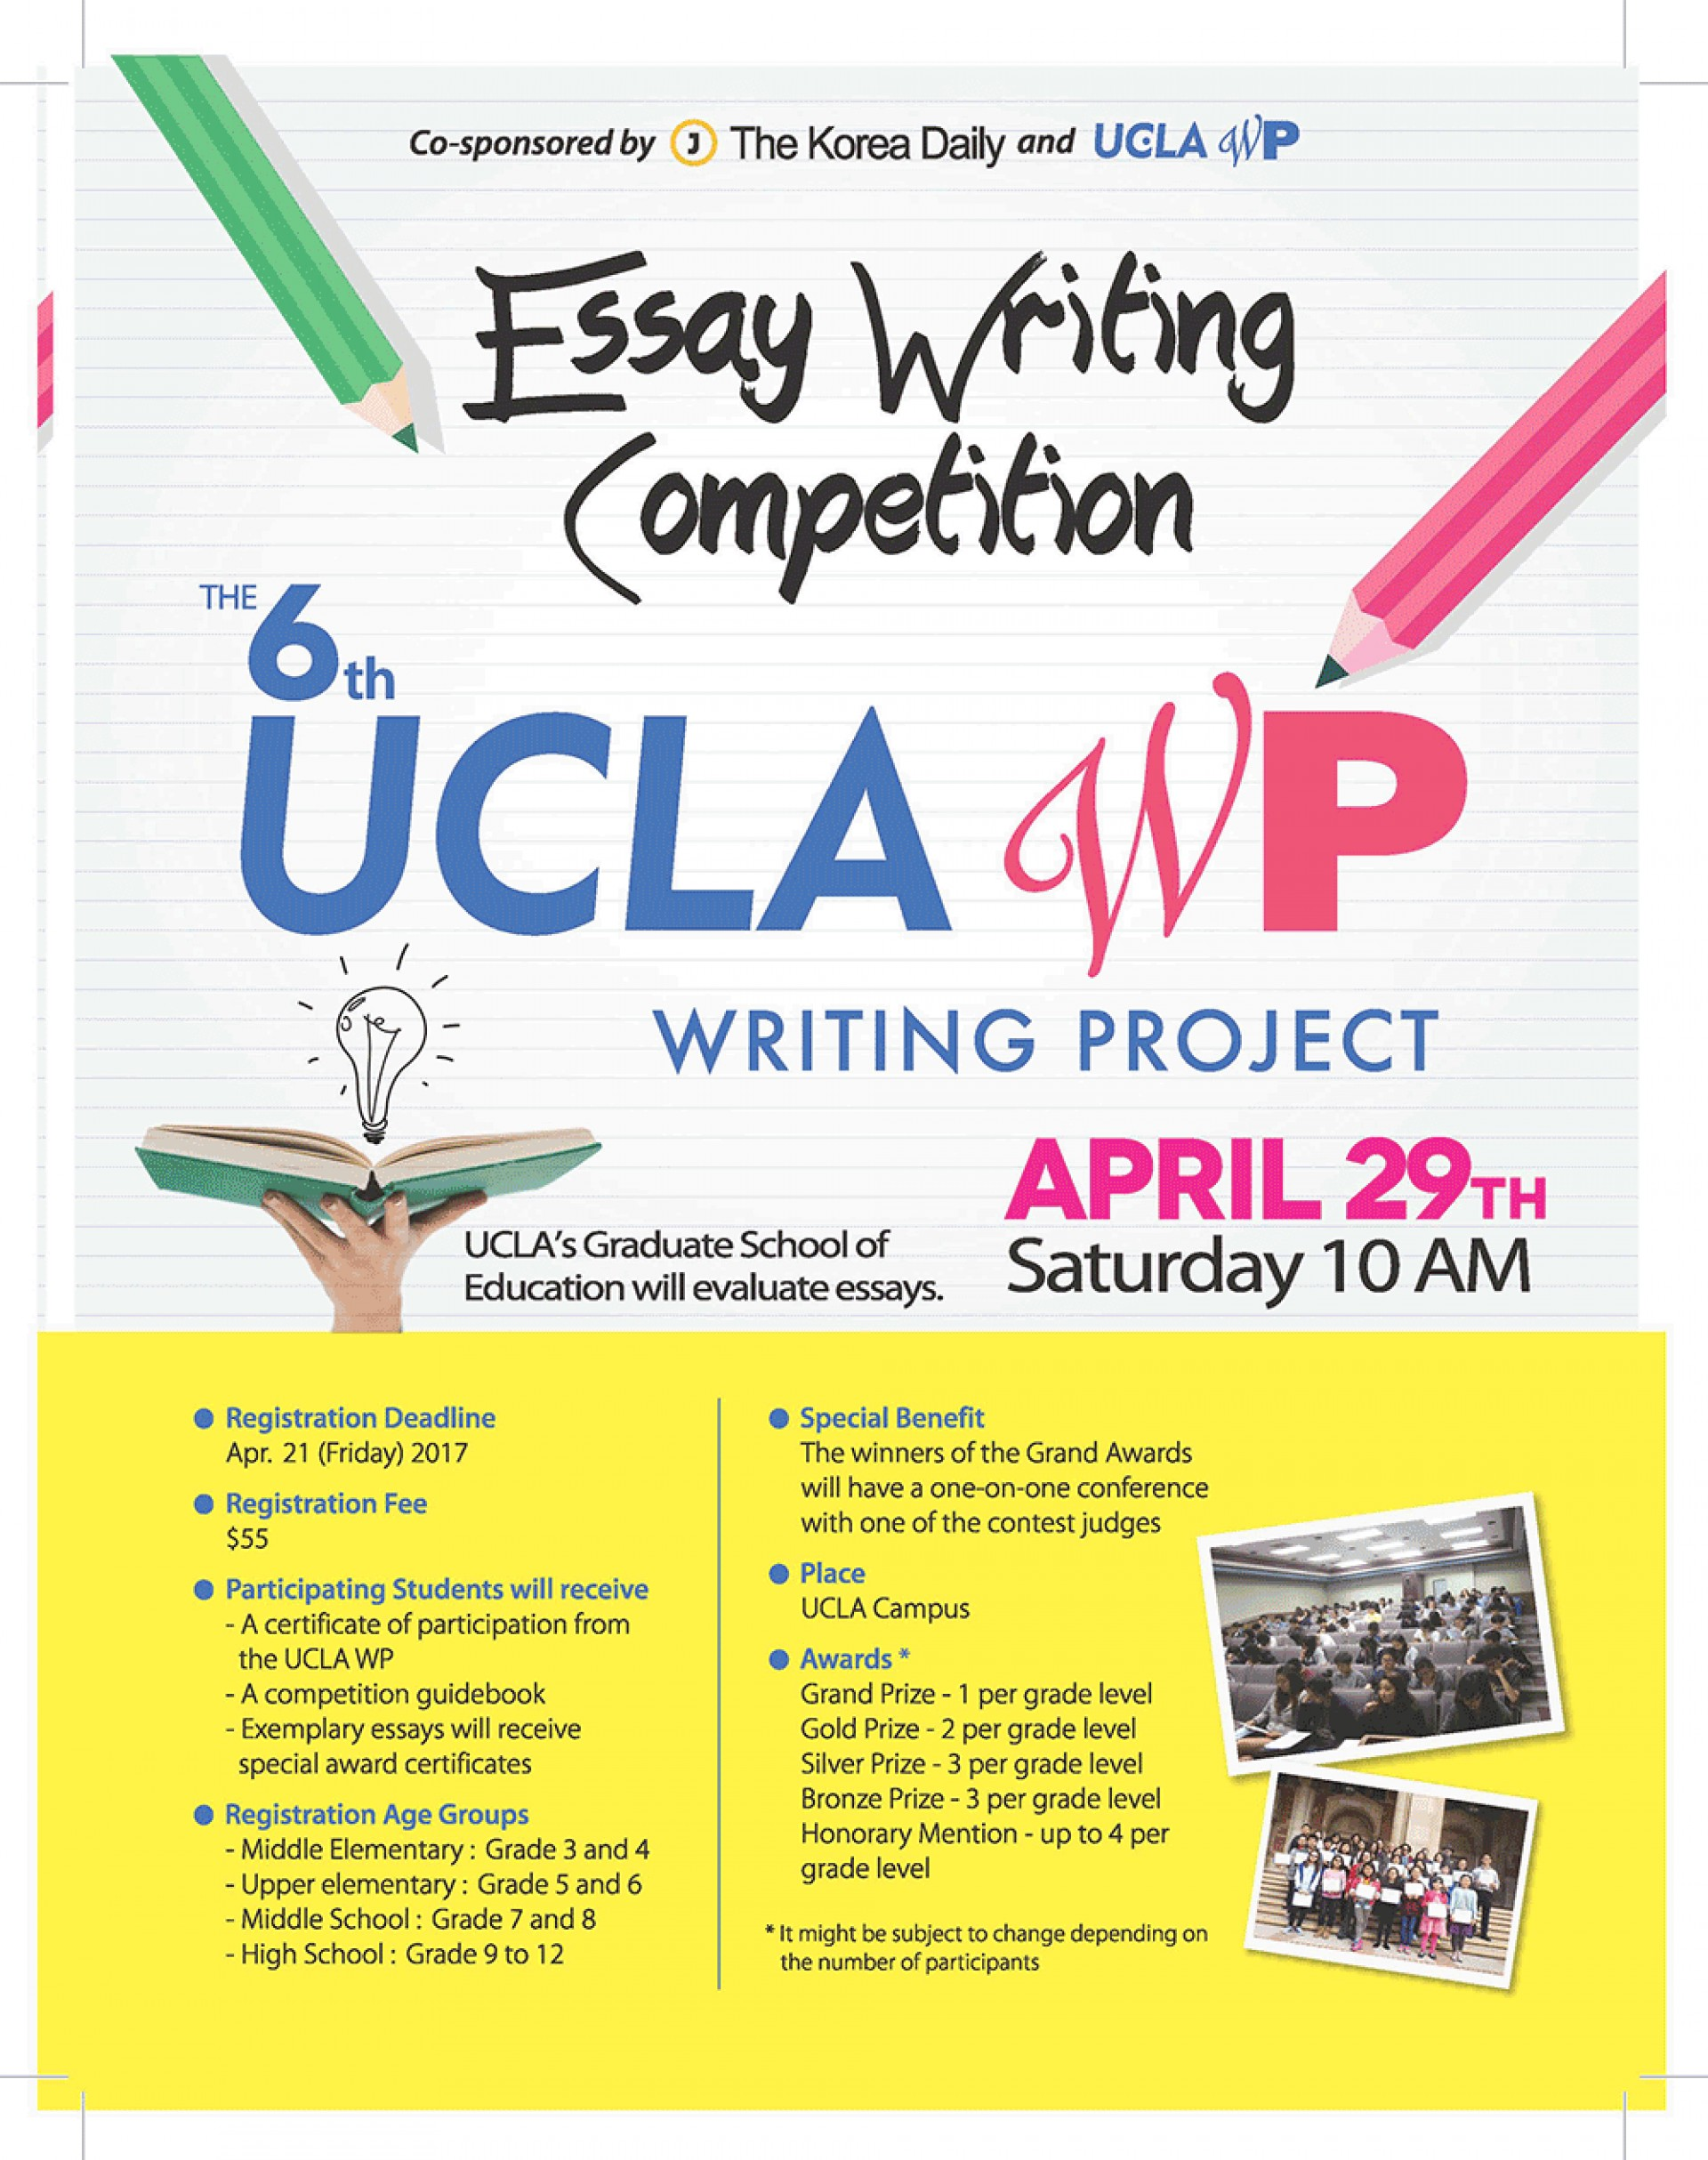 008 Essay Writing Contest Example Uclakoreandaily Incredible International Competitions For High School Students Rules By Essayhub 1920